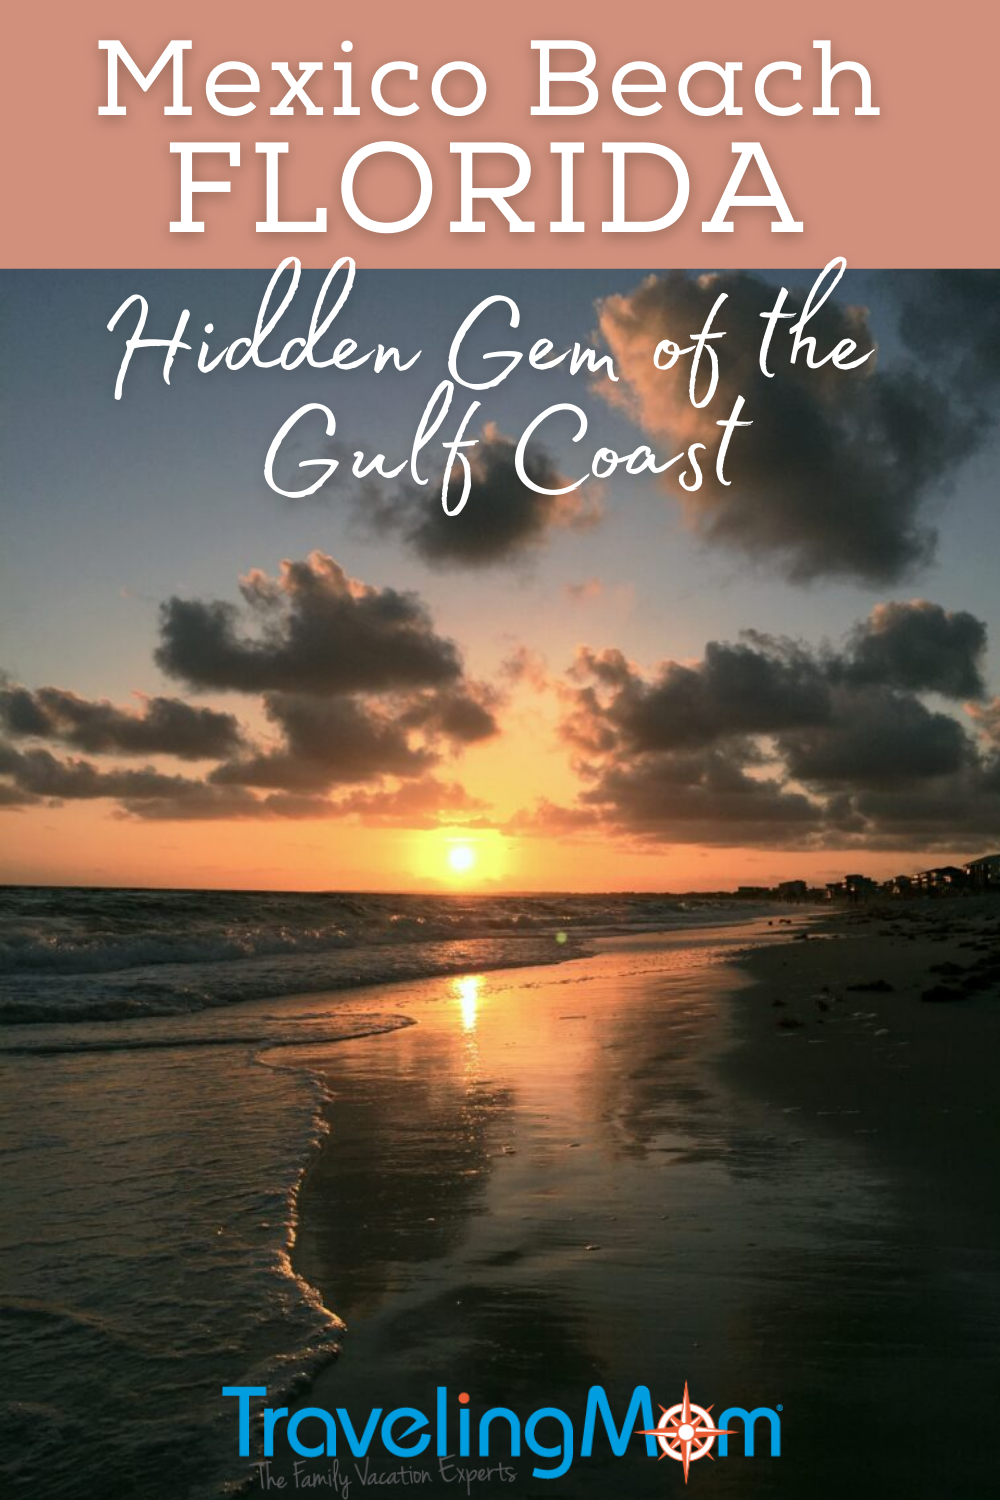 image of beach at sunset with text Mexico Beach Florida hidden gem of the gulf coast